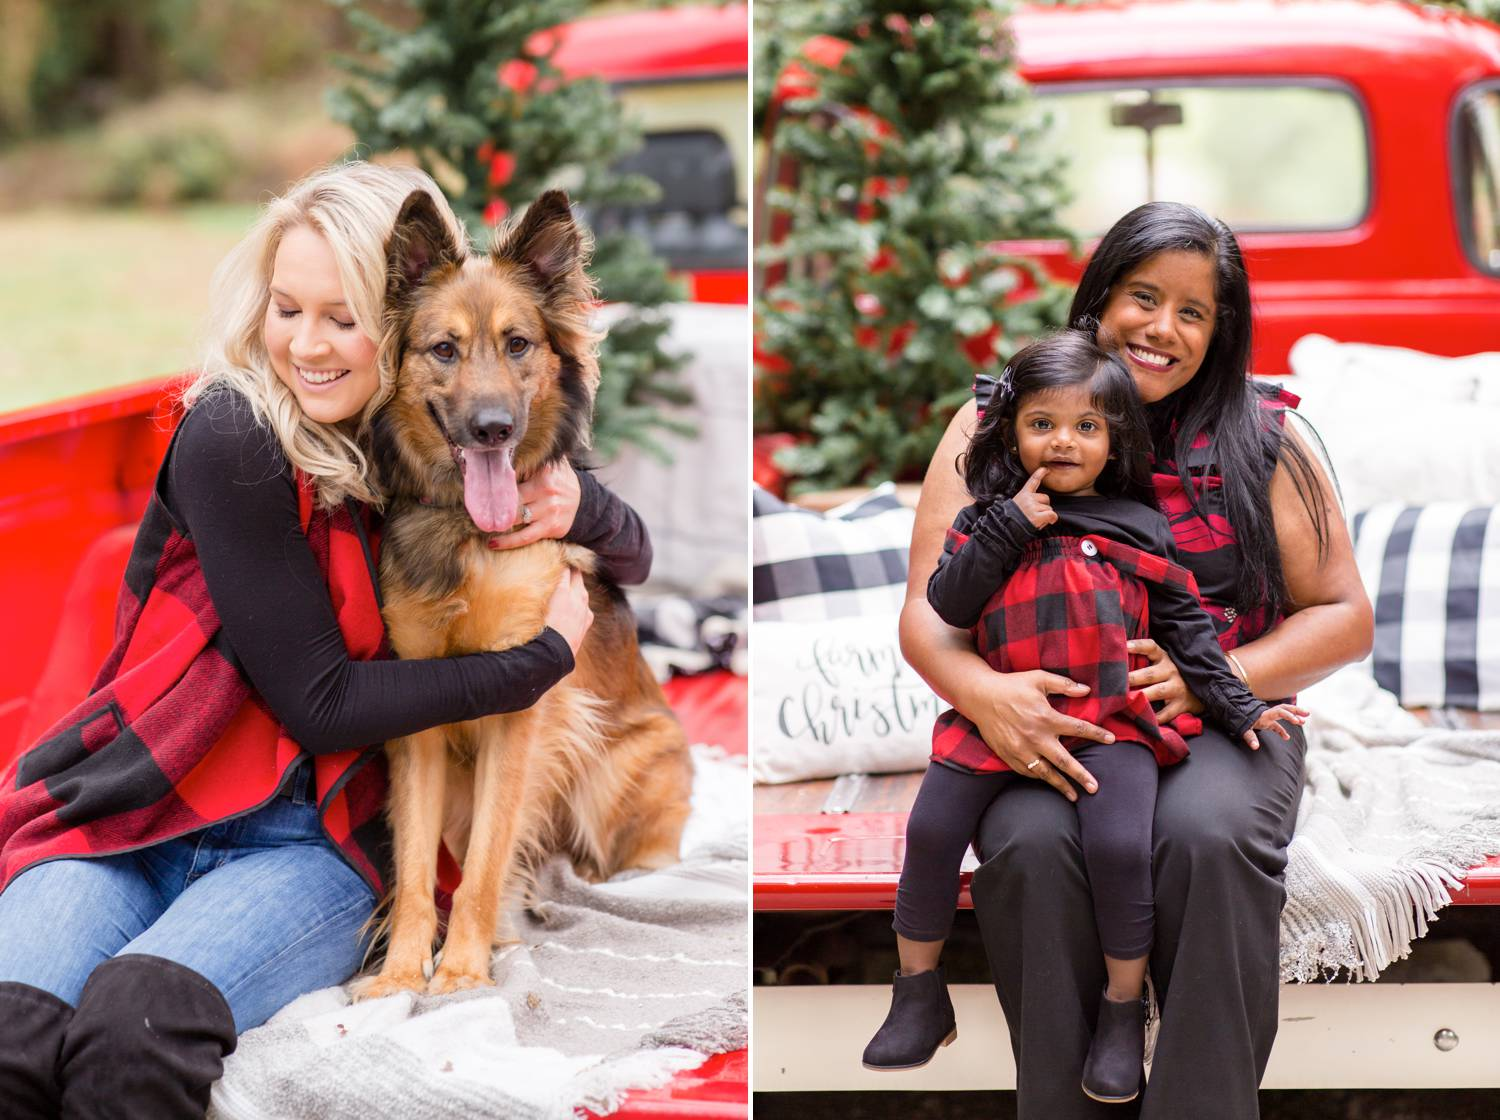 In two photos by Rebecca Rice, women sit on the back of a vintage red pickup truck. A Christmas tree sits in the truck bed behind them. In one photo, a blonde woman hugs her fluffy dog. In the other photo, a brunette woman of color holds her tiny daughter in her lap. Christmas Mini Session: Ideas Families will ADORE!